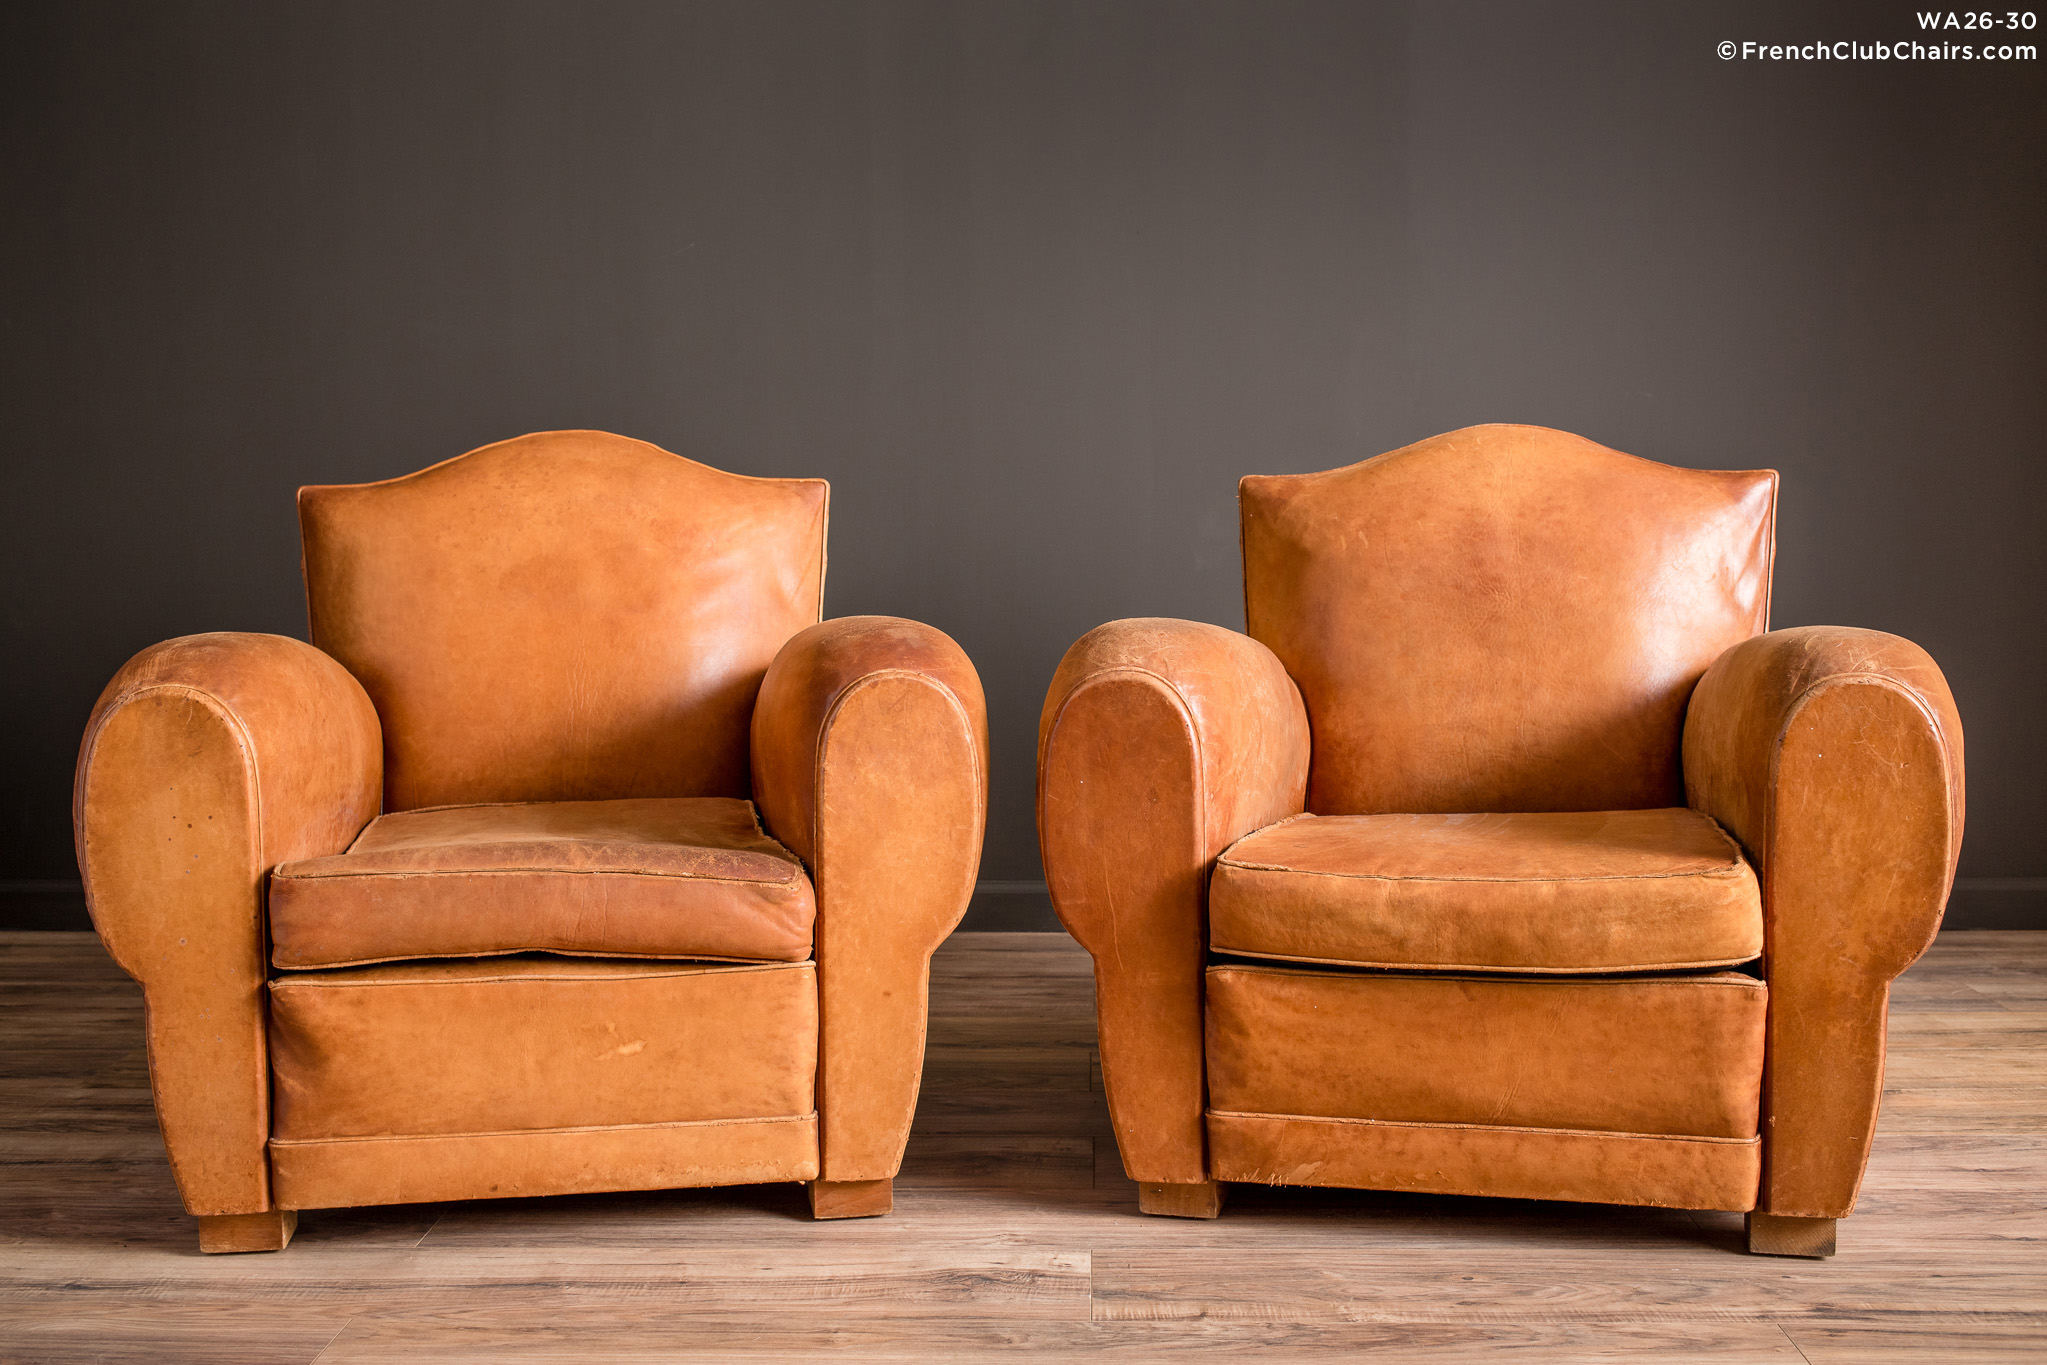 WA_26-30_Giverny_Gendarme_Light_Caramel_Pair_R_1TQ-v01-williams-antiks-leather-french-club-chair-wa_fcccom